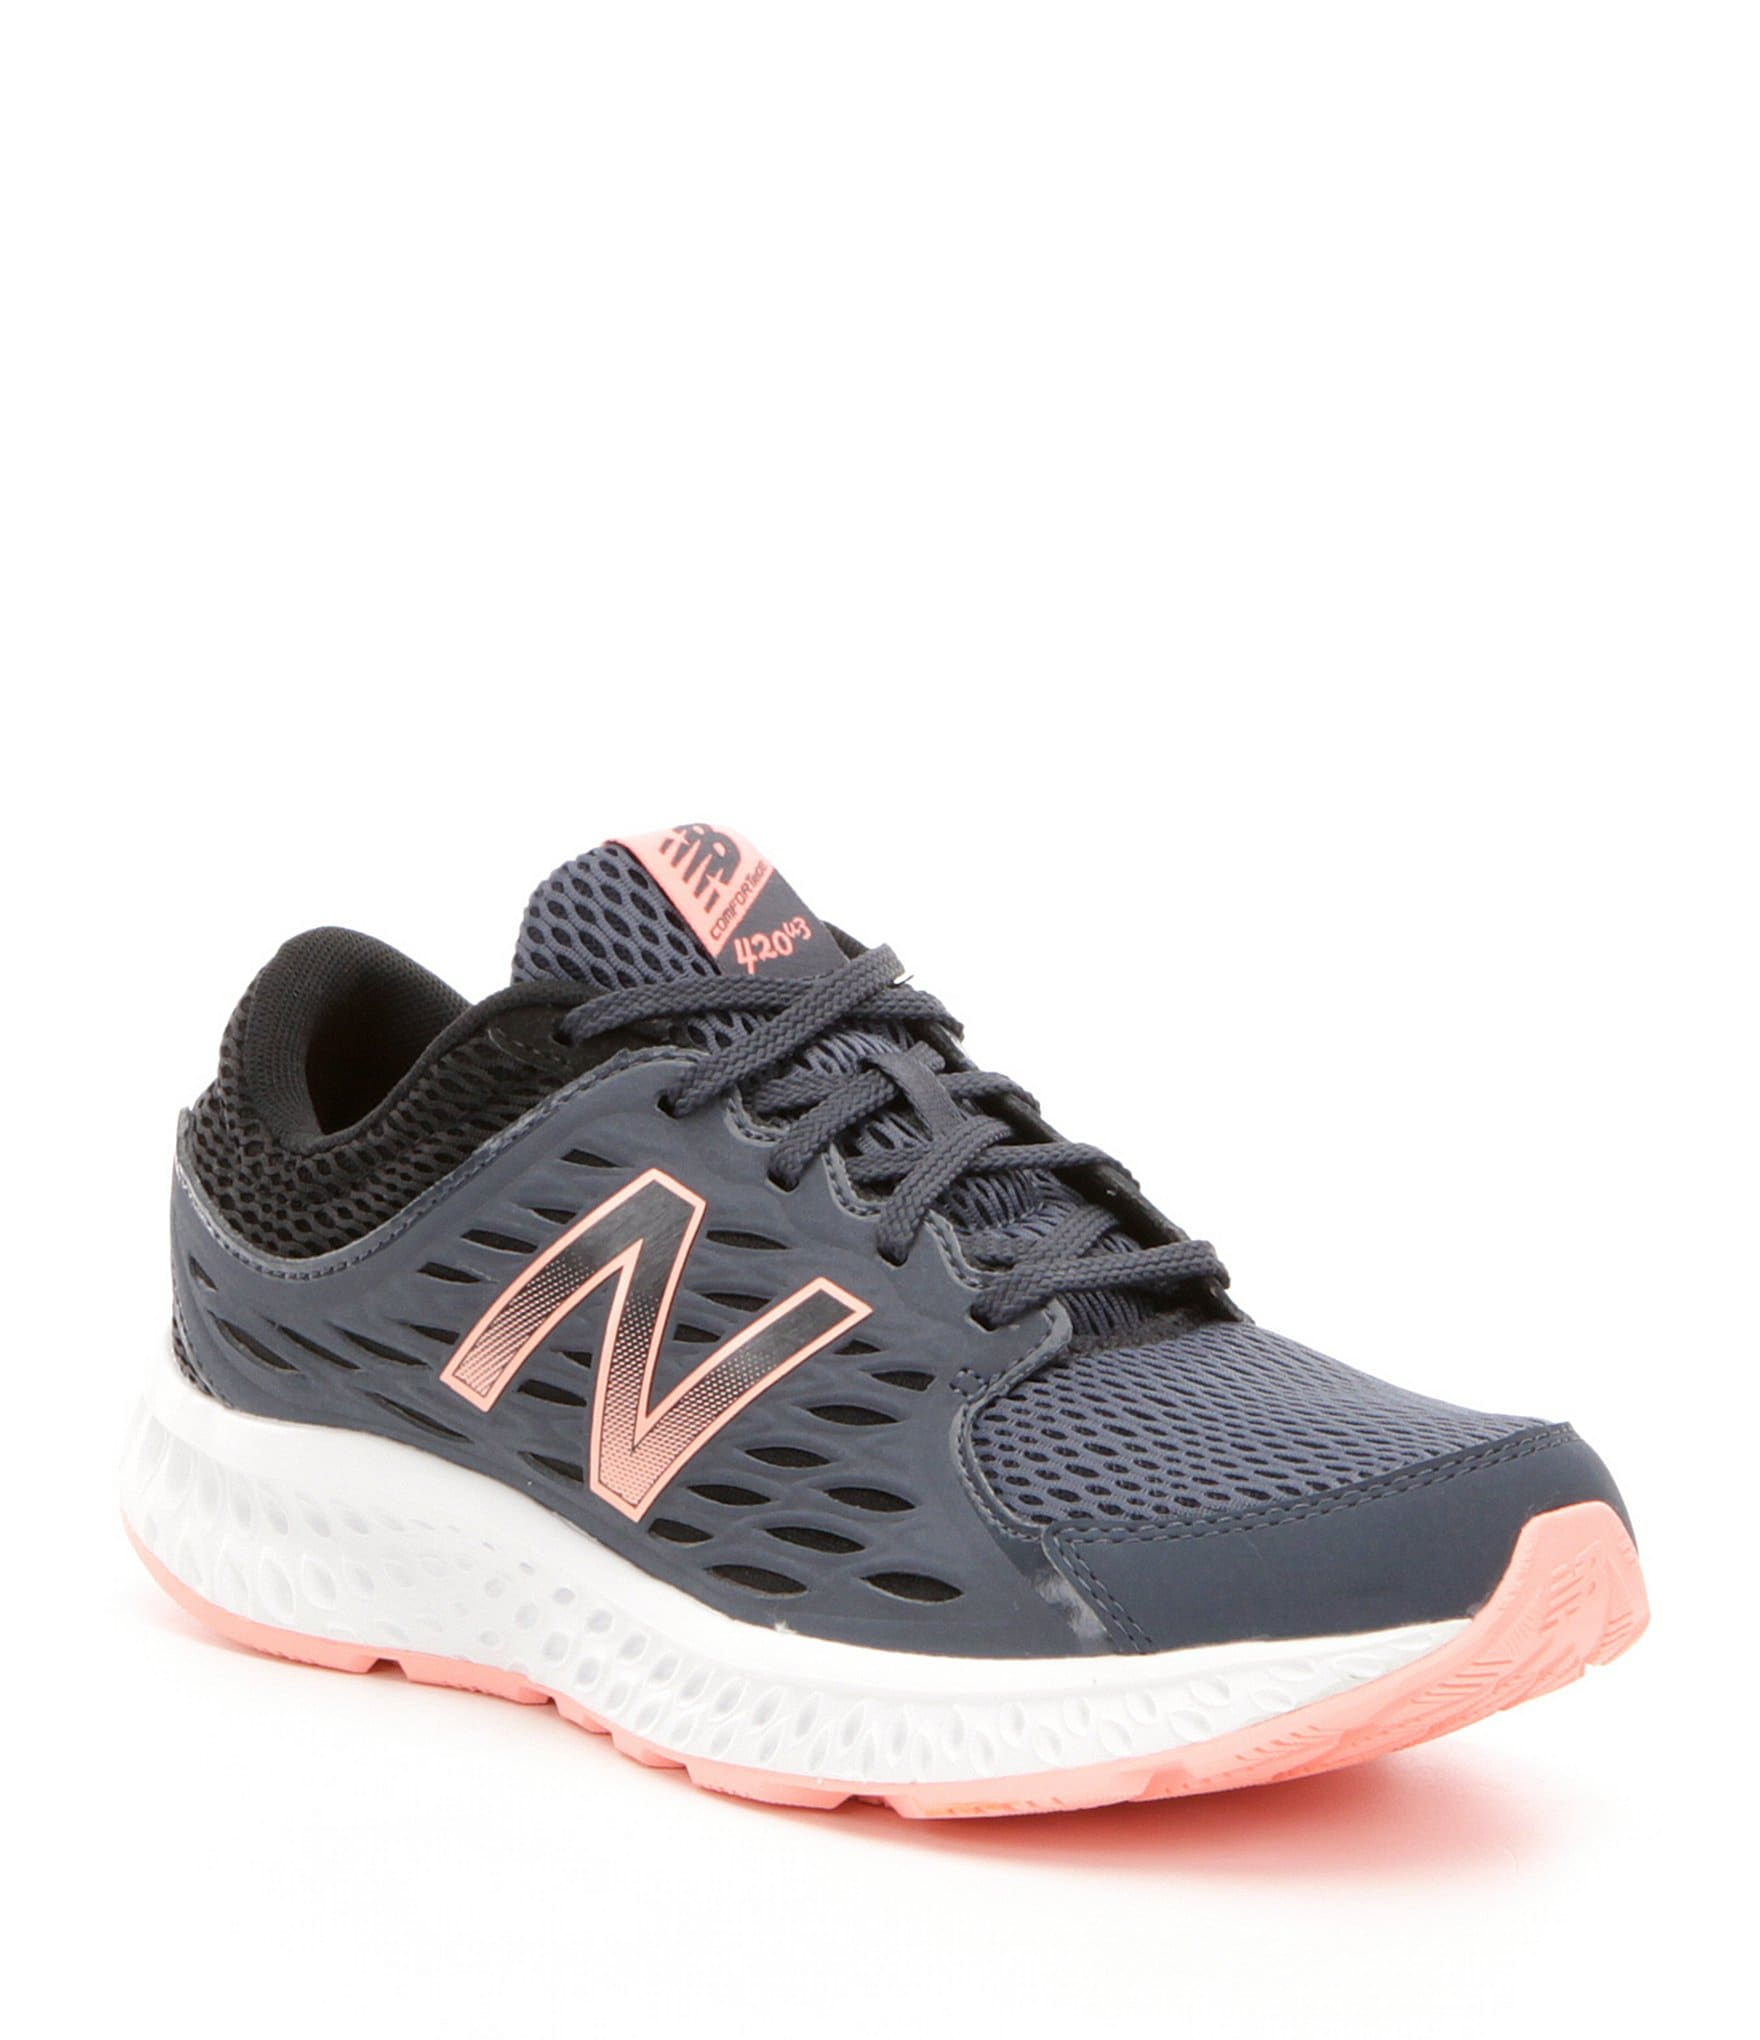 new balance women s 420 v3 running shoes dillards. Black Bedroom Furniture Sets. Home Design Ideas